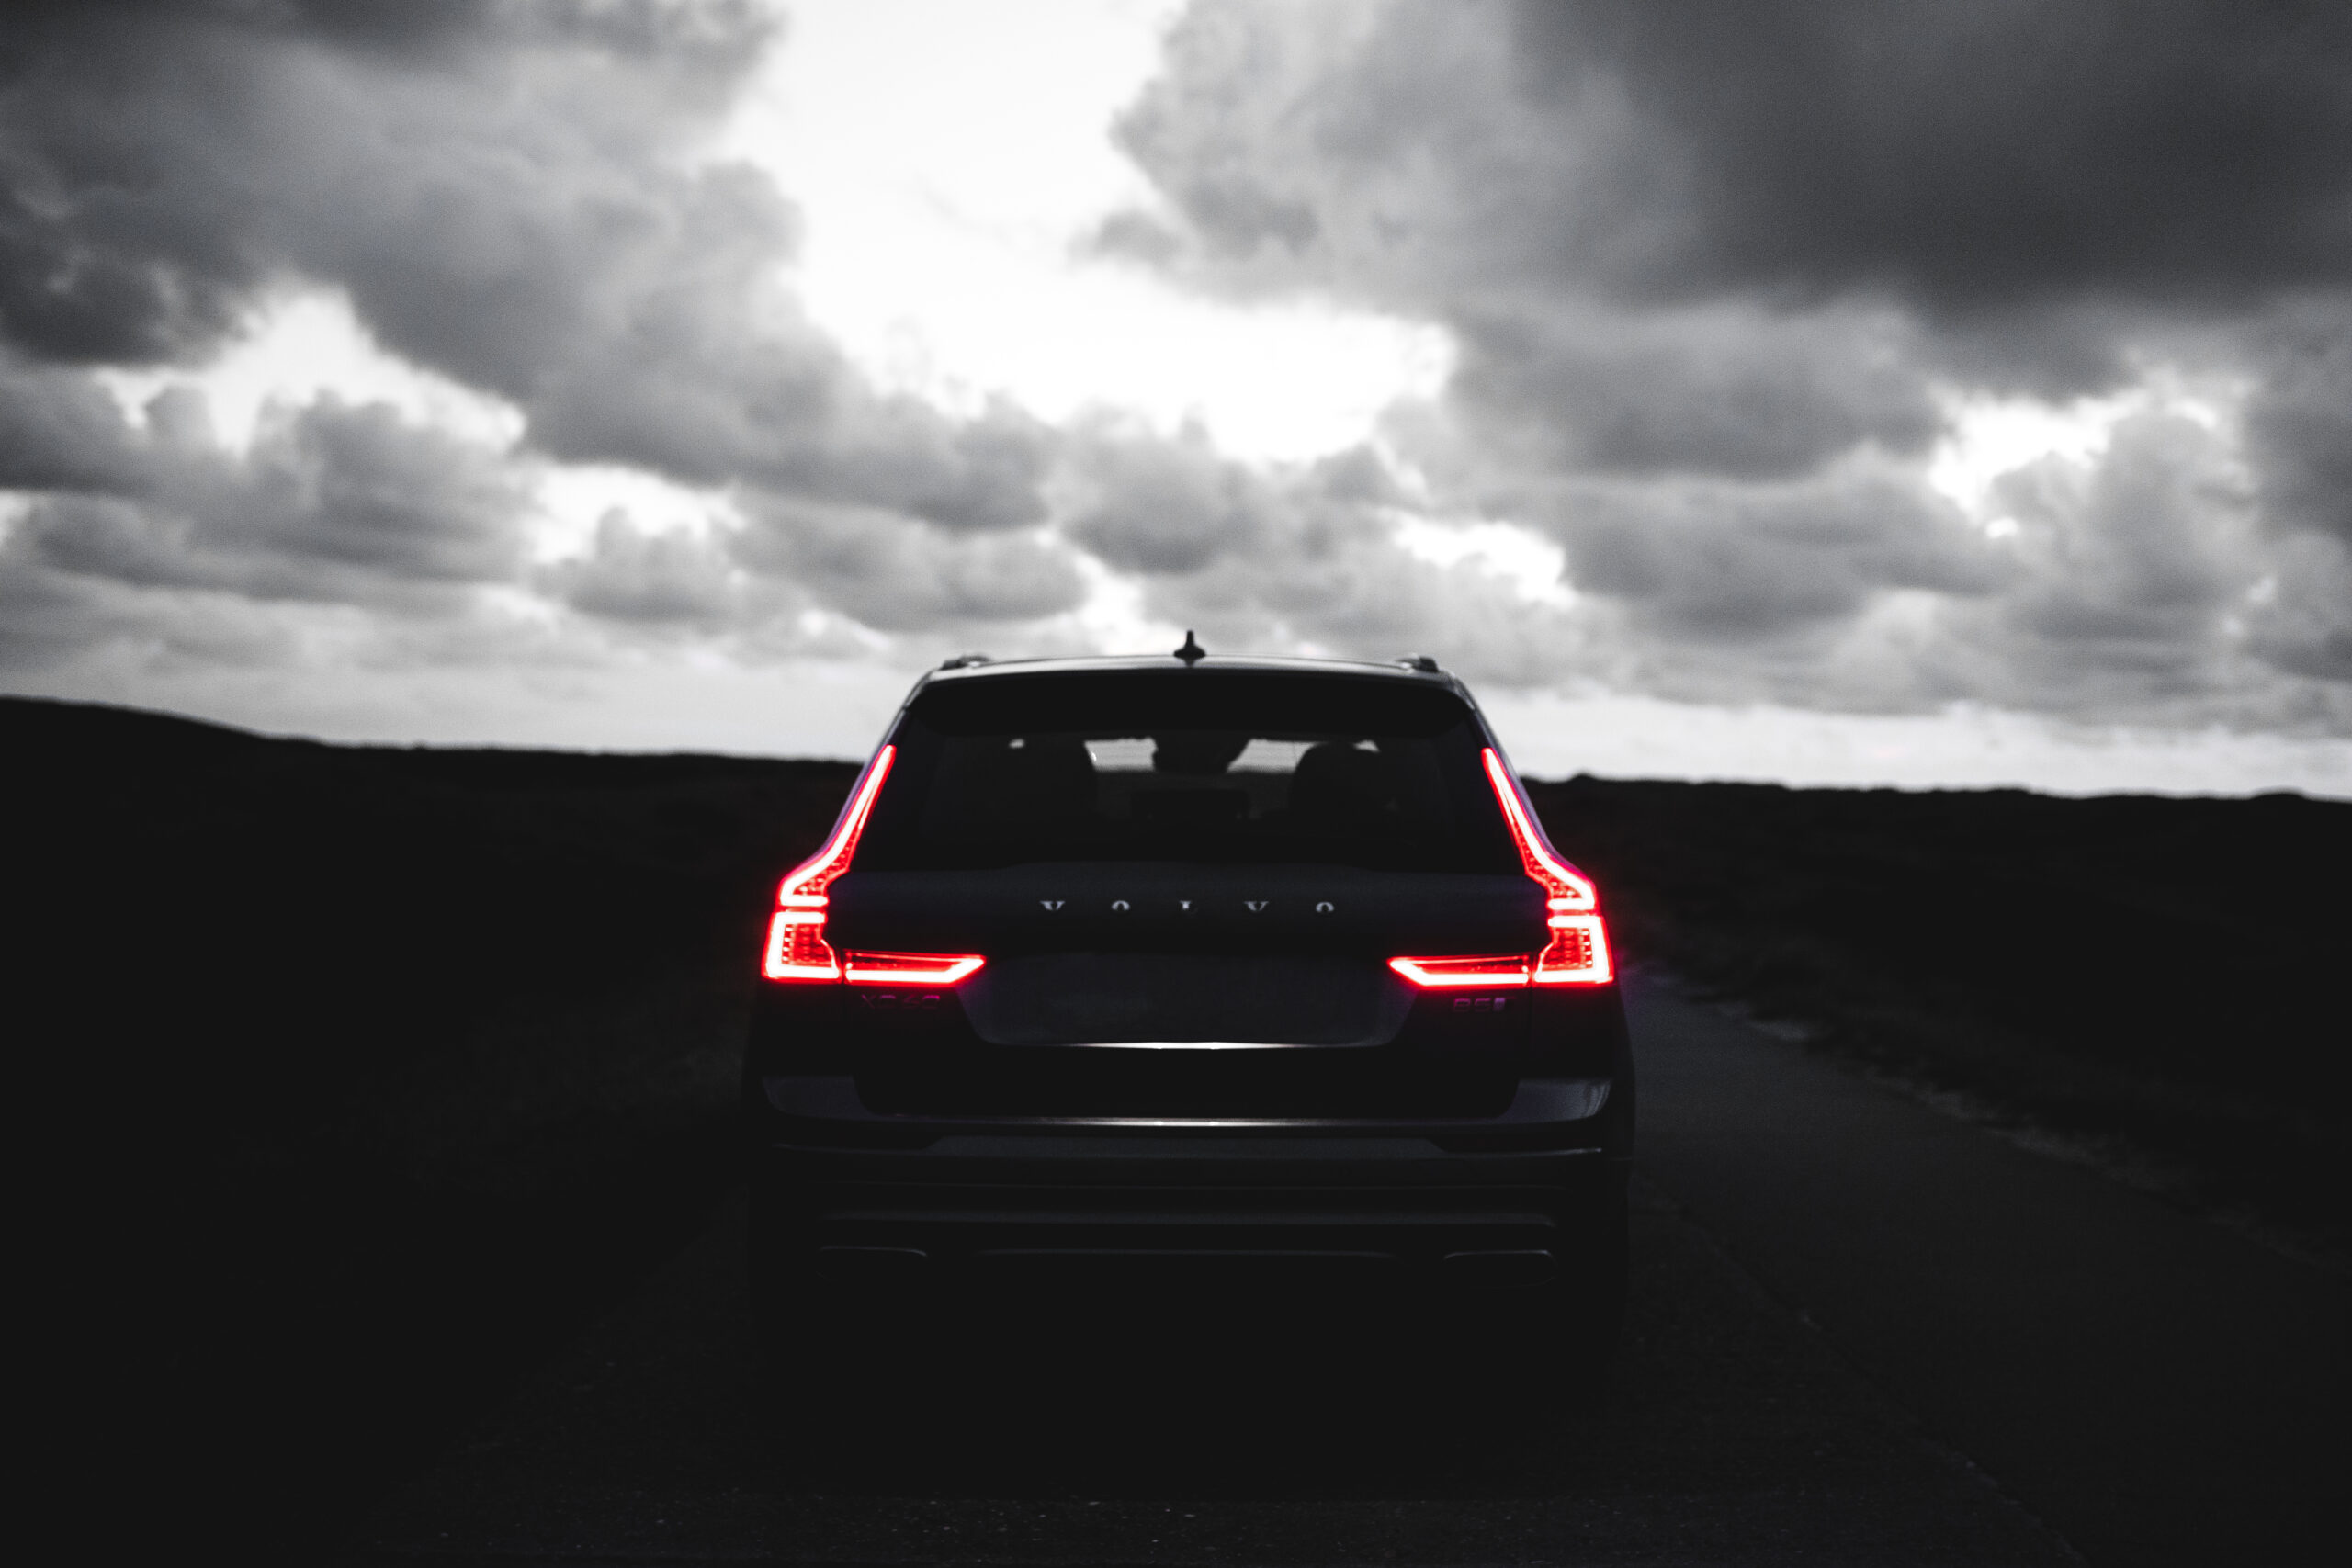 Volvo XC60 - Photography by Luca Massimilian